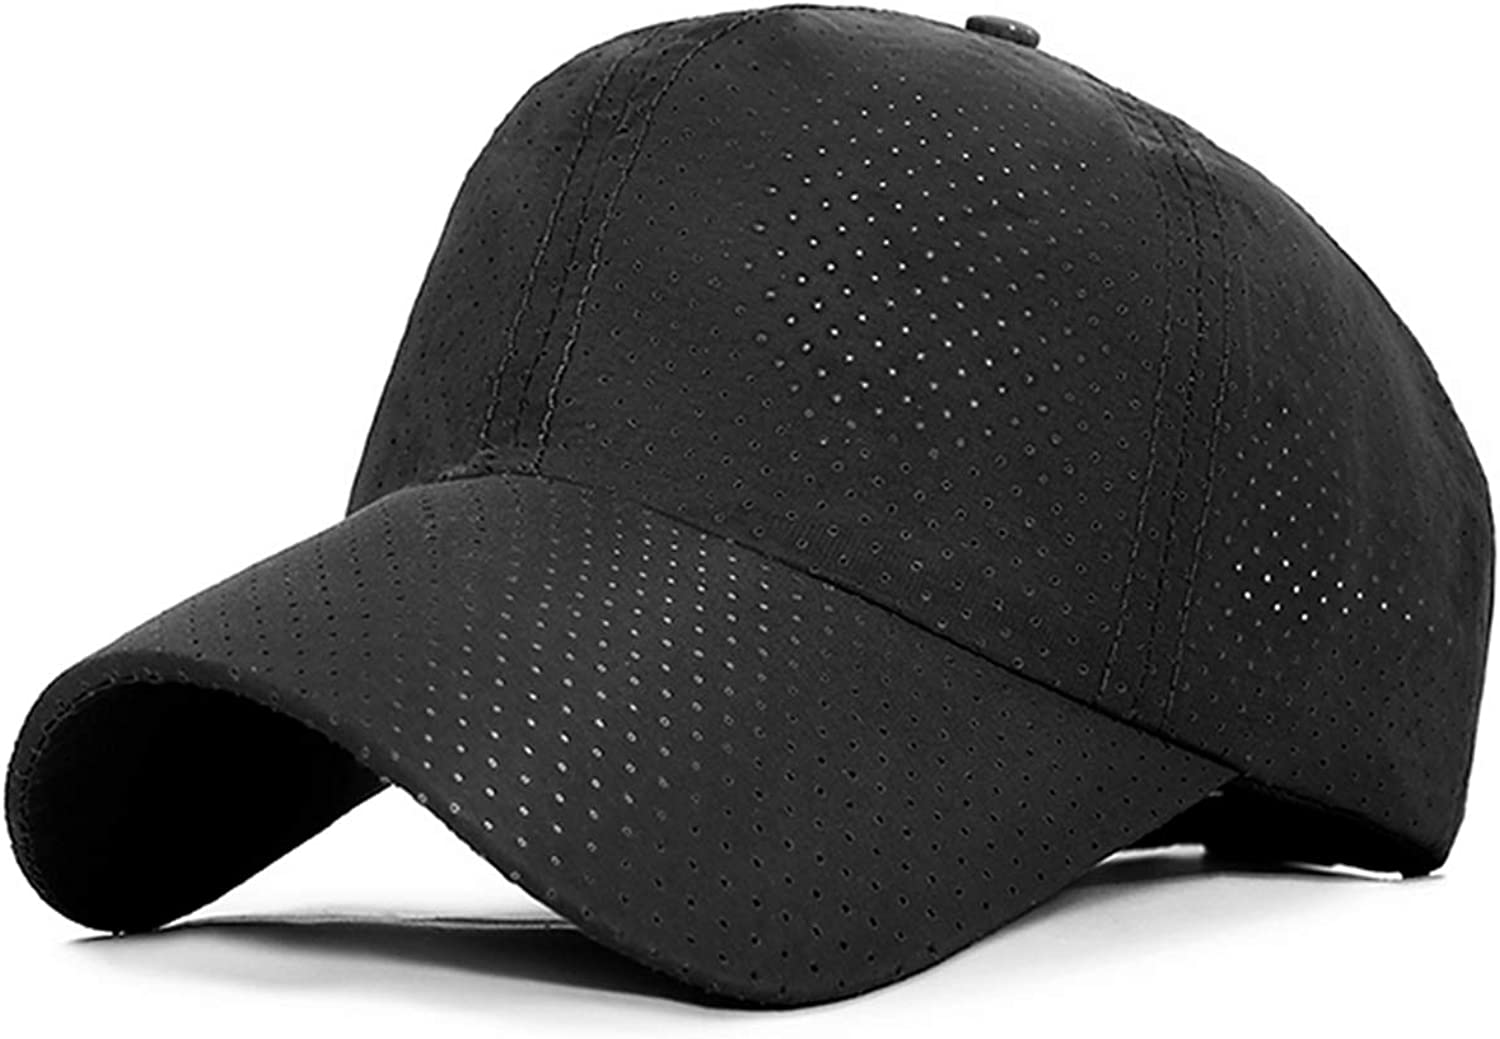 Fashion Design Mesh Baseball Cap Unisex Summer Pure Color Cap Women Adjustable Breathable Sport Hats